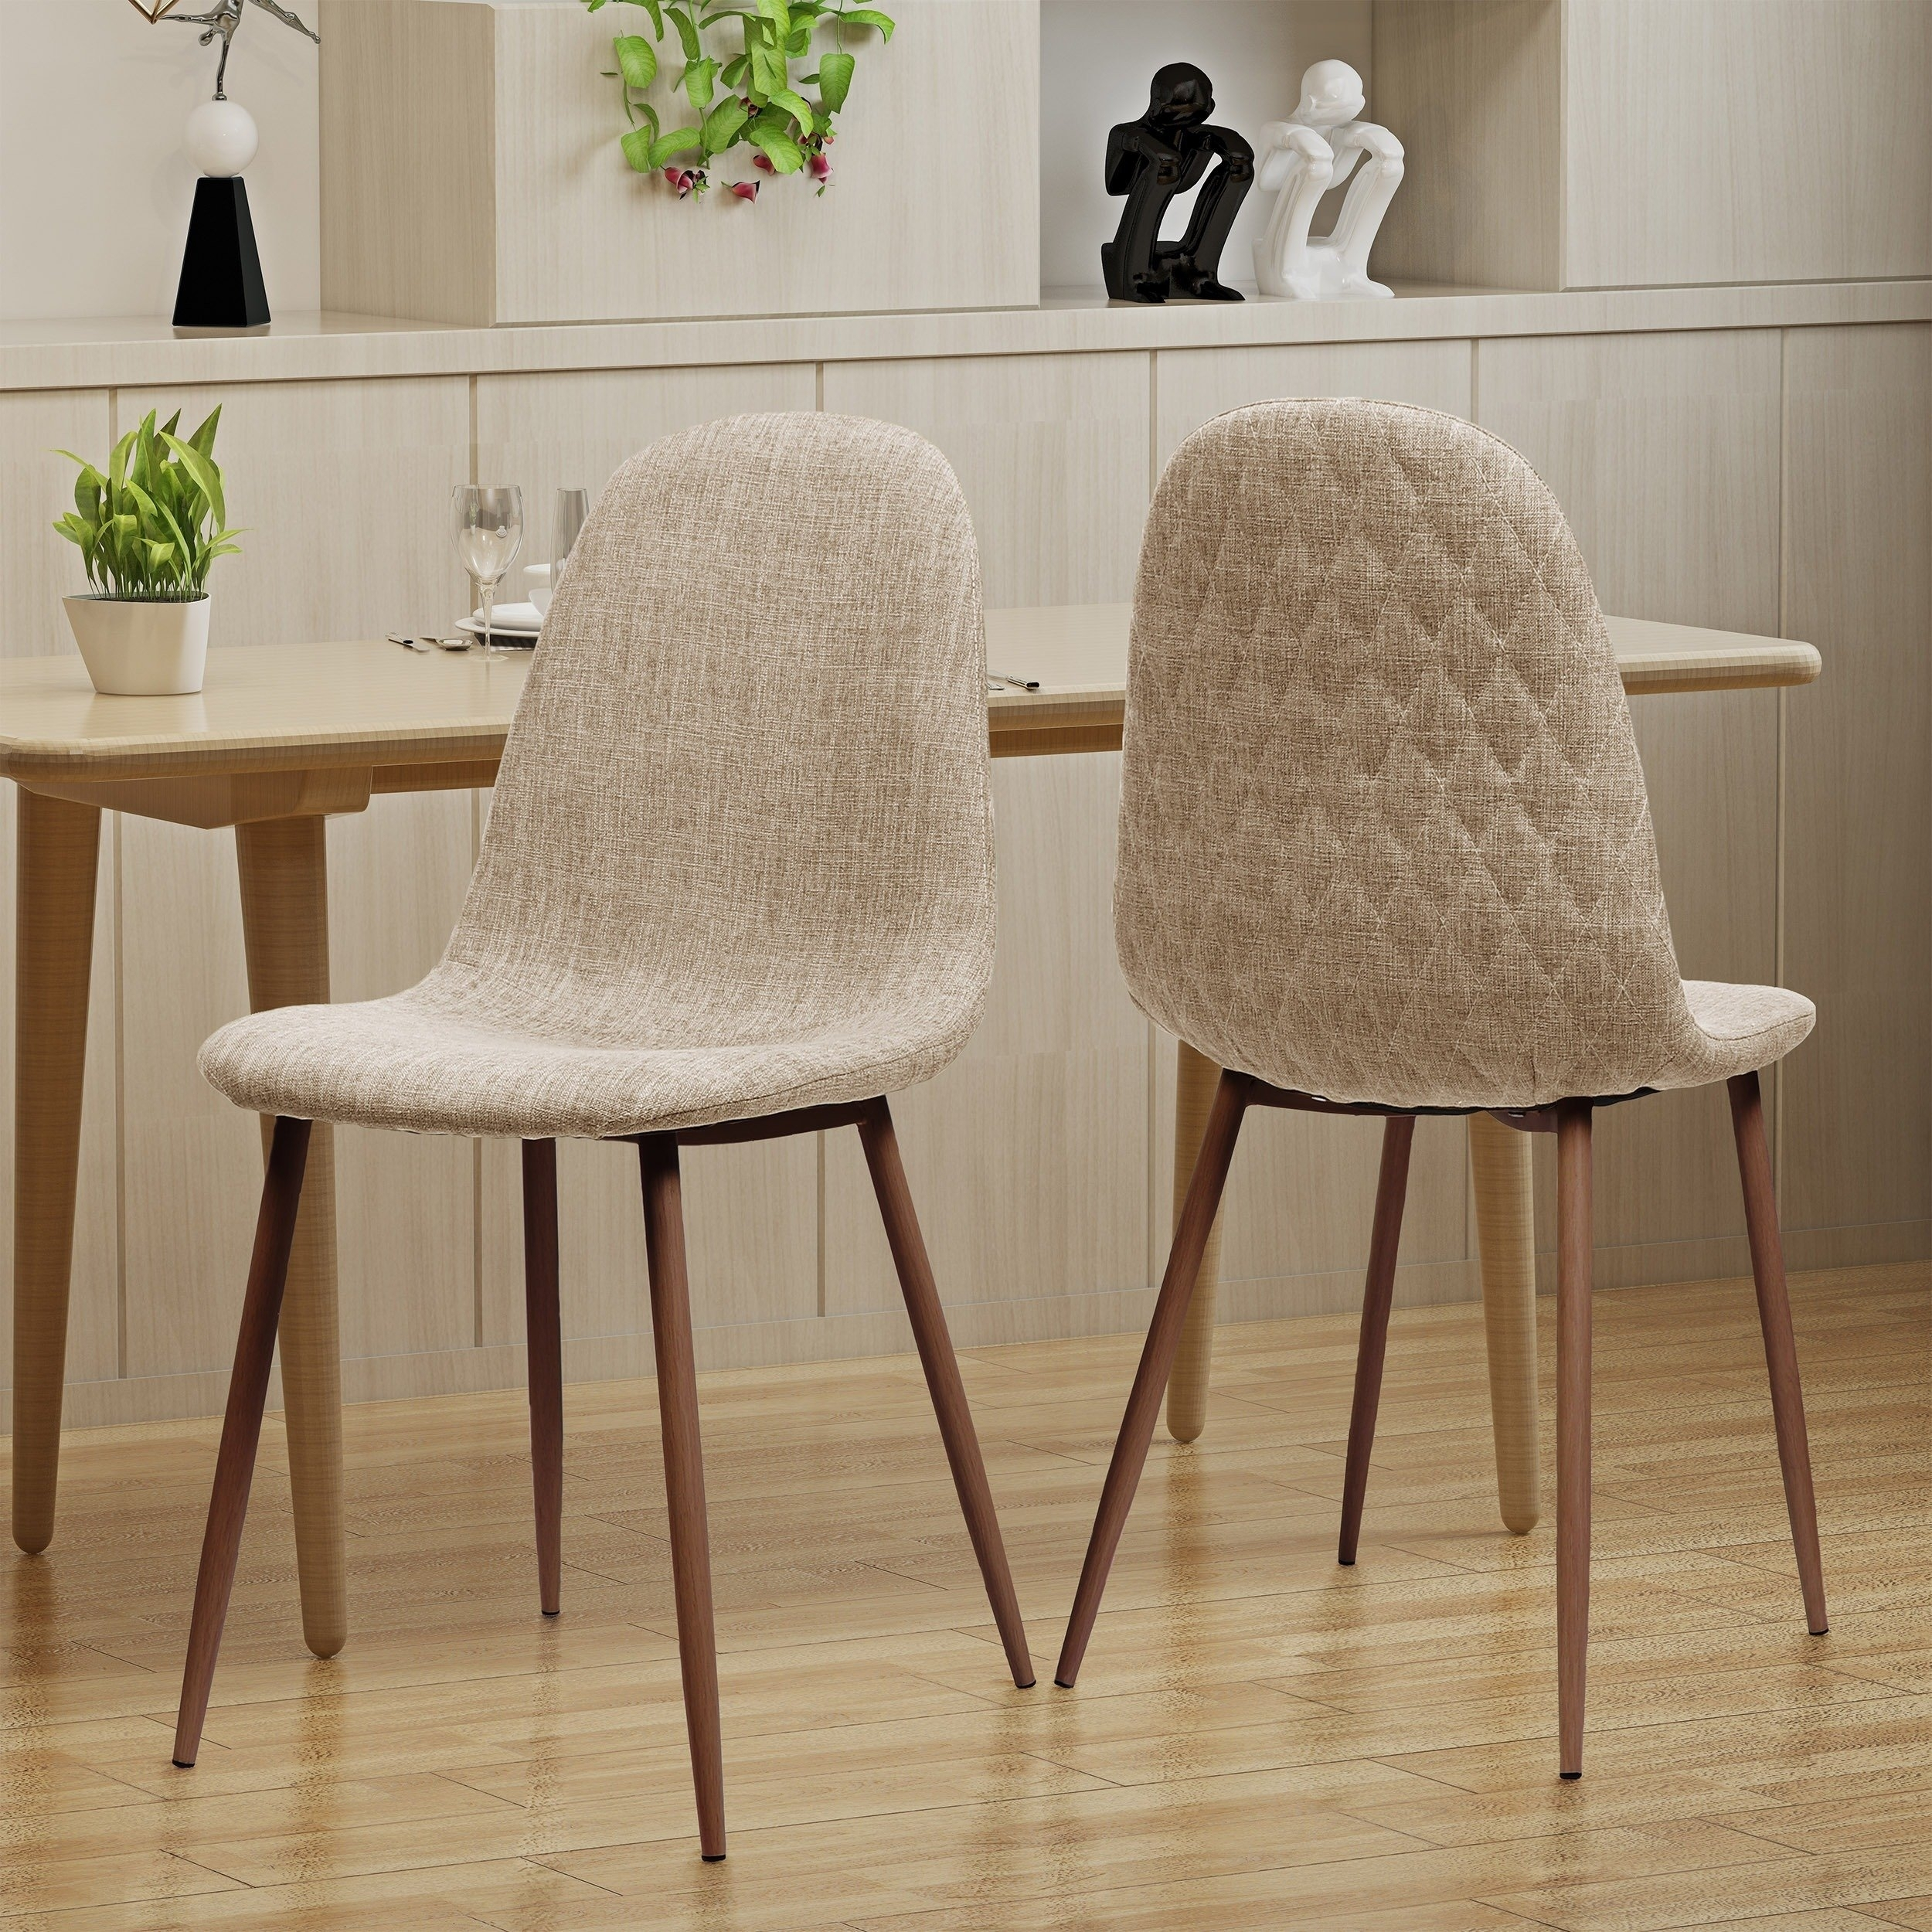 Shop Caden Mid Century Fabric Dining Chair (Set Of 2)Christopher Throughout Newest Caden 7 Piece Dining Sets With Upholstered Side Chair (View 5 of 20)